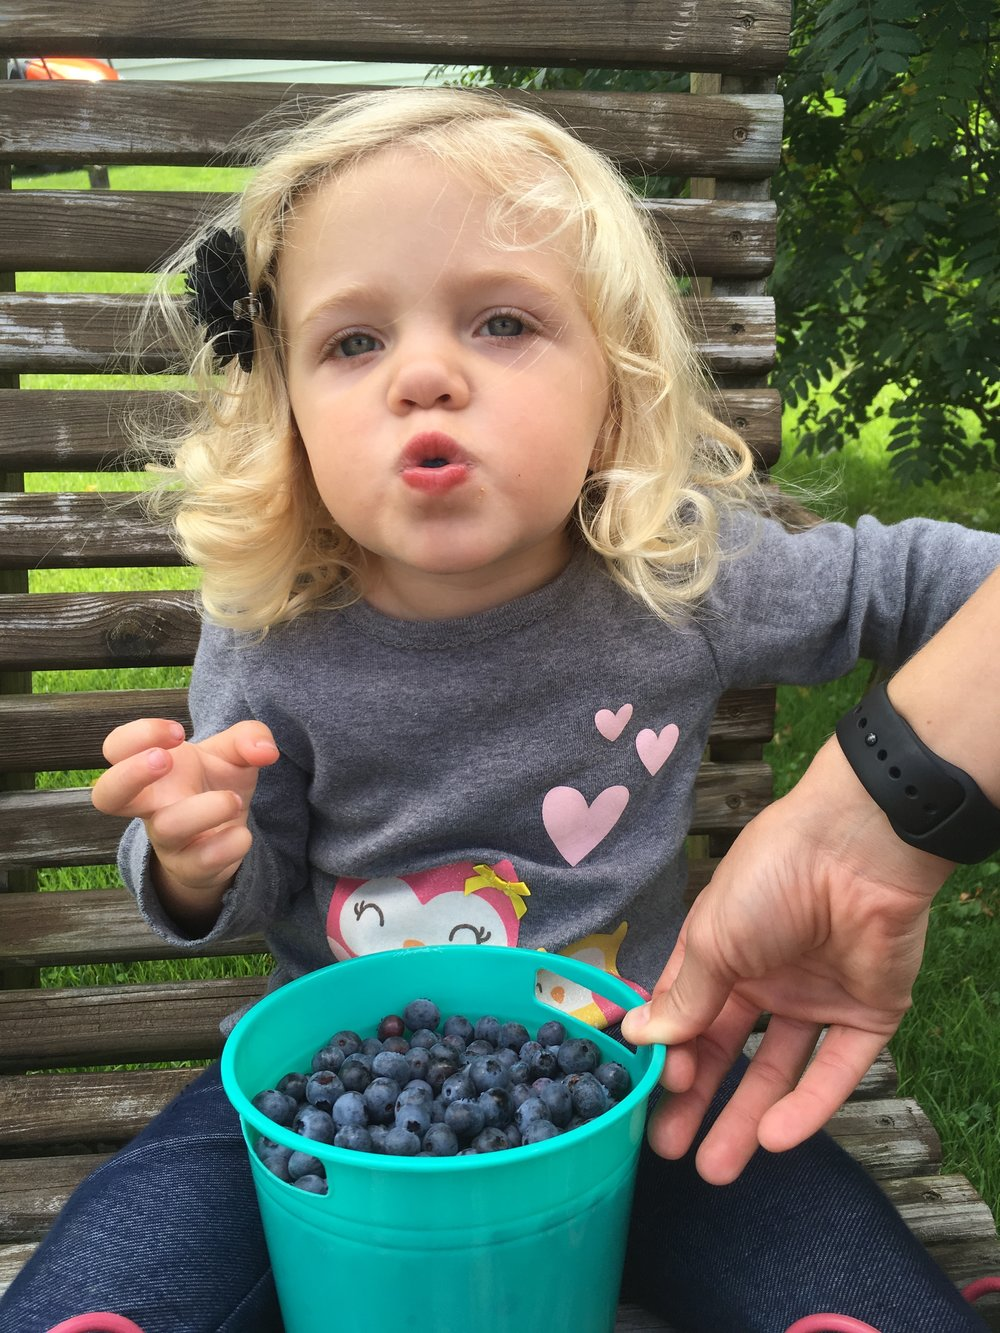 Eating up at Aunt Peggy's blueberry farm